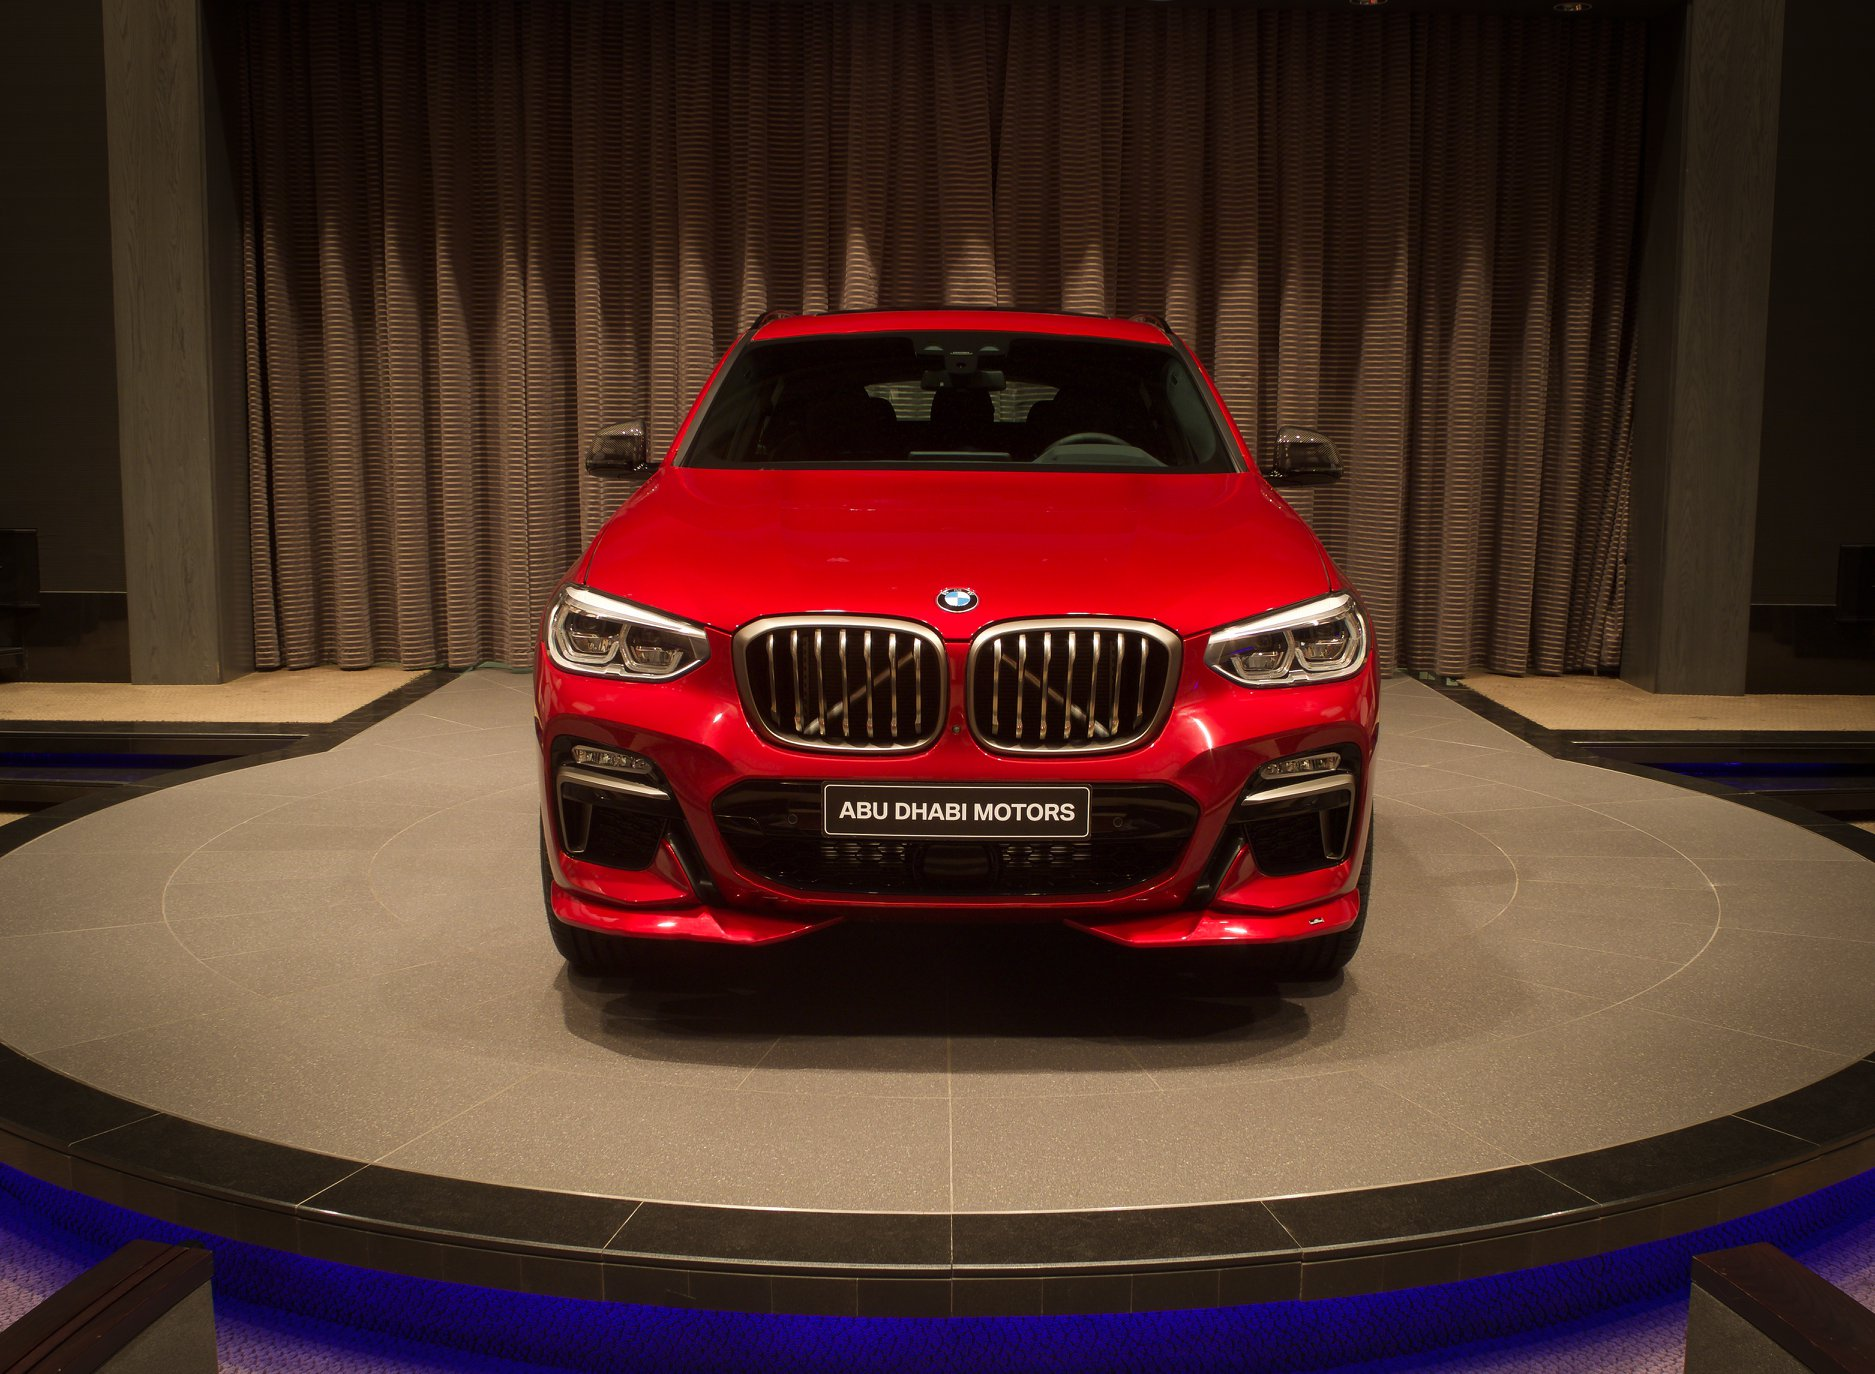 bmw x4 m40i flamenco red abu dhabi 1